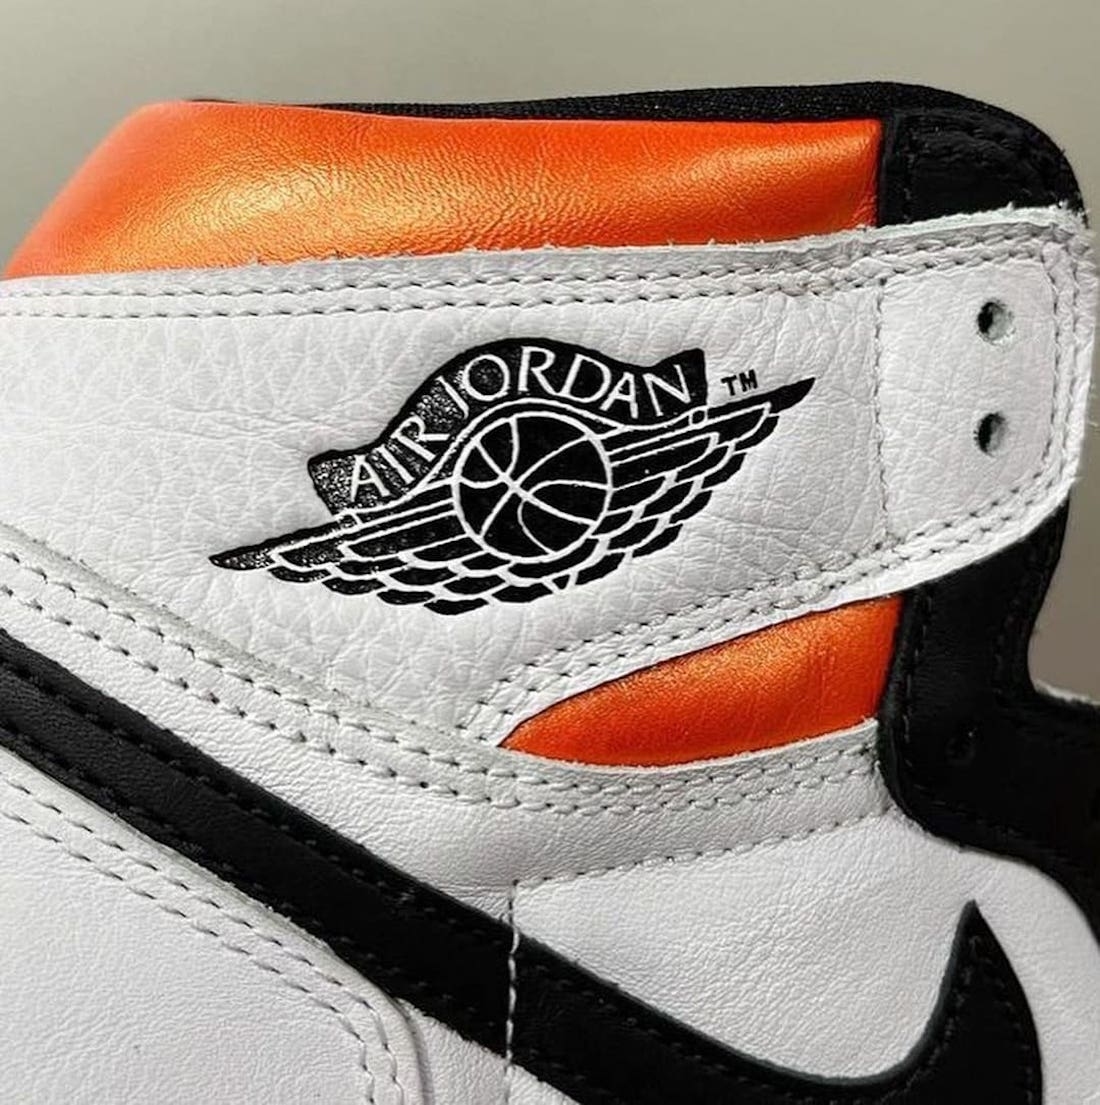 nike-air-jordan-1-retro-high-og-shattered-backboard-4-0-release-20210717